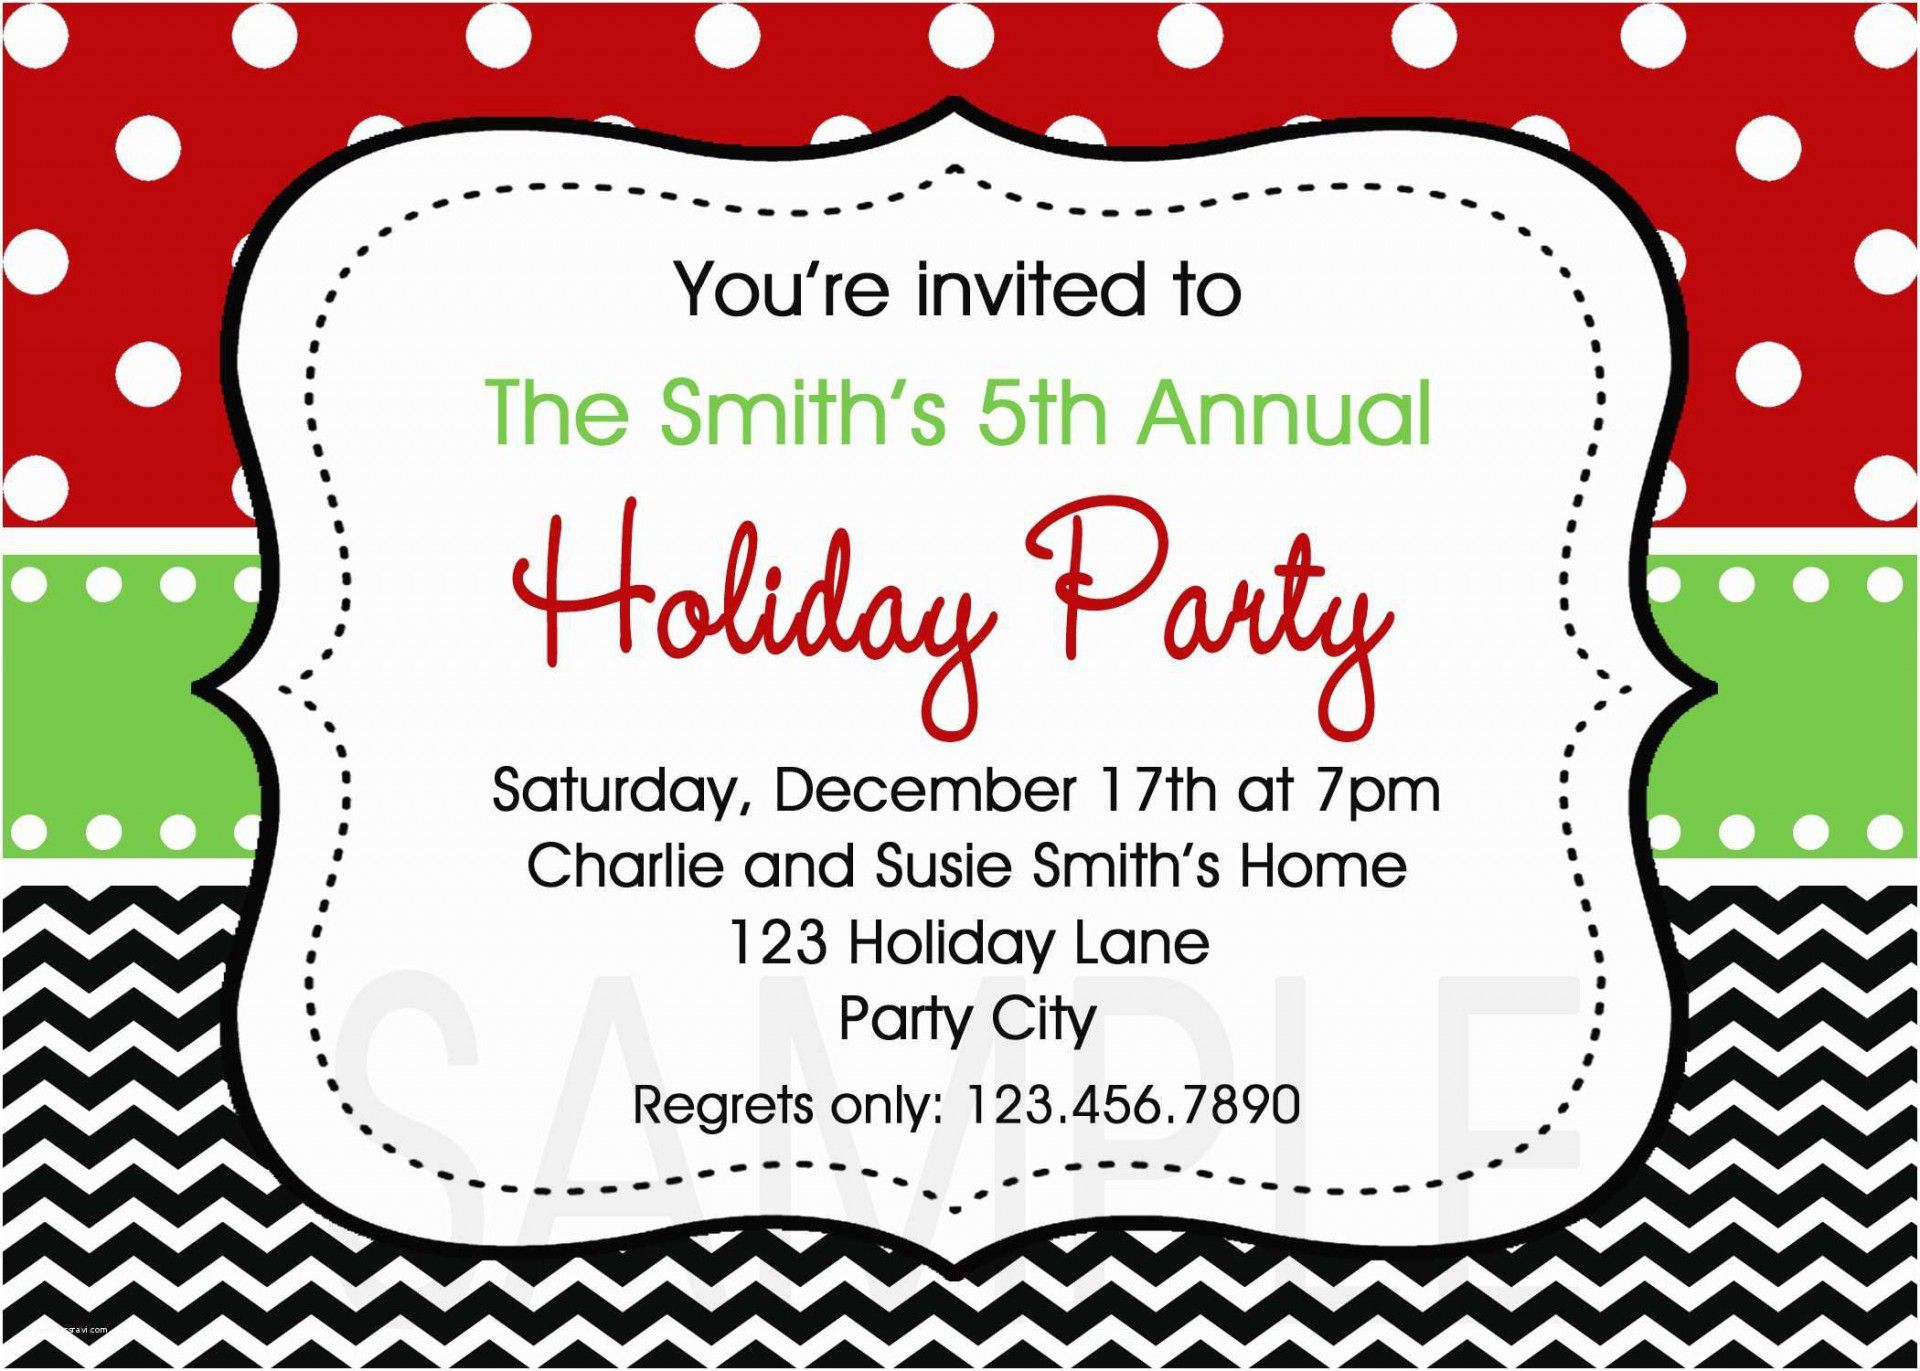 002 Singular Free Holiday Invite Template Sample  Templates Party Ticket For EmailFull